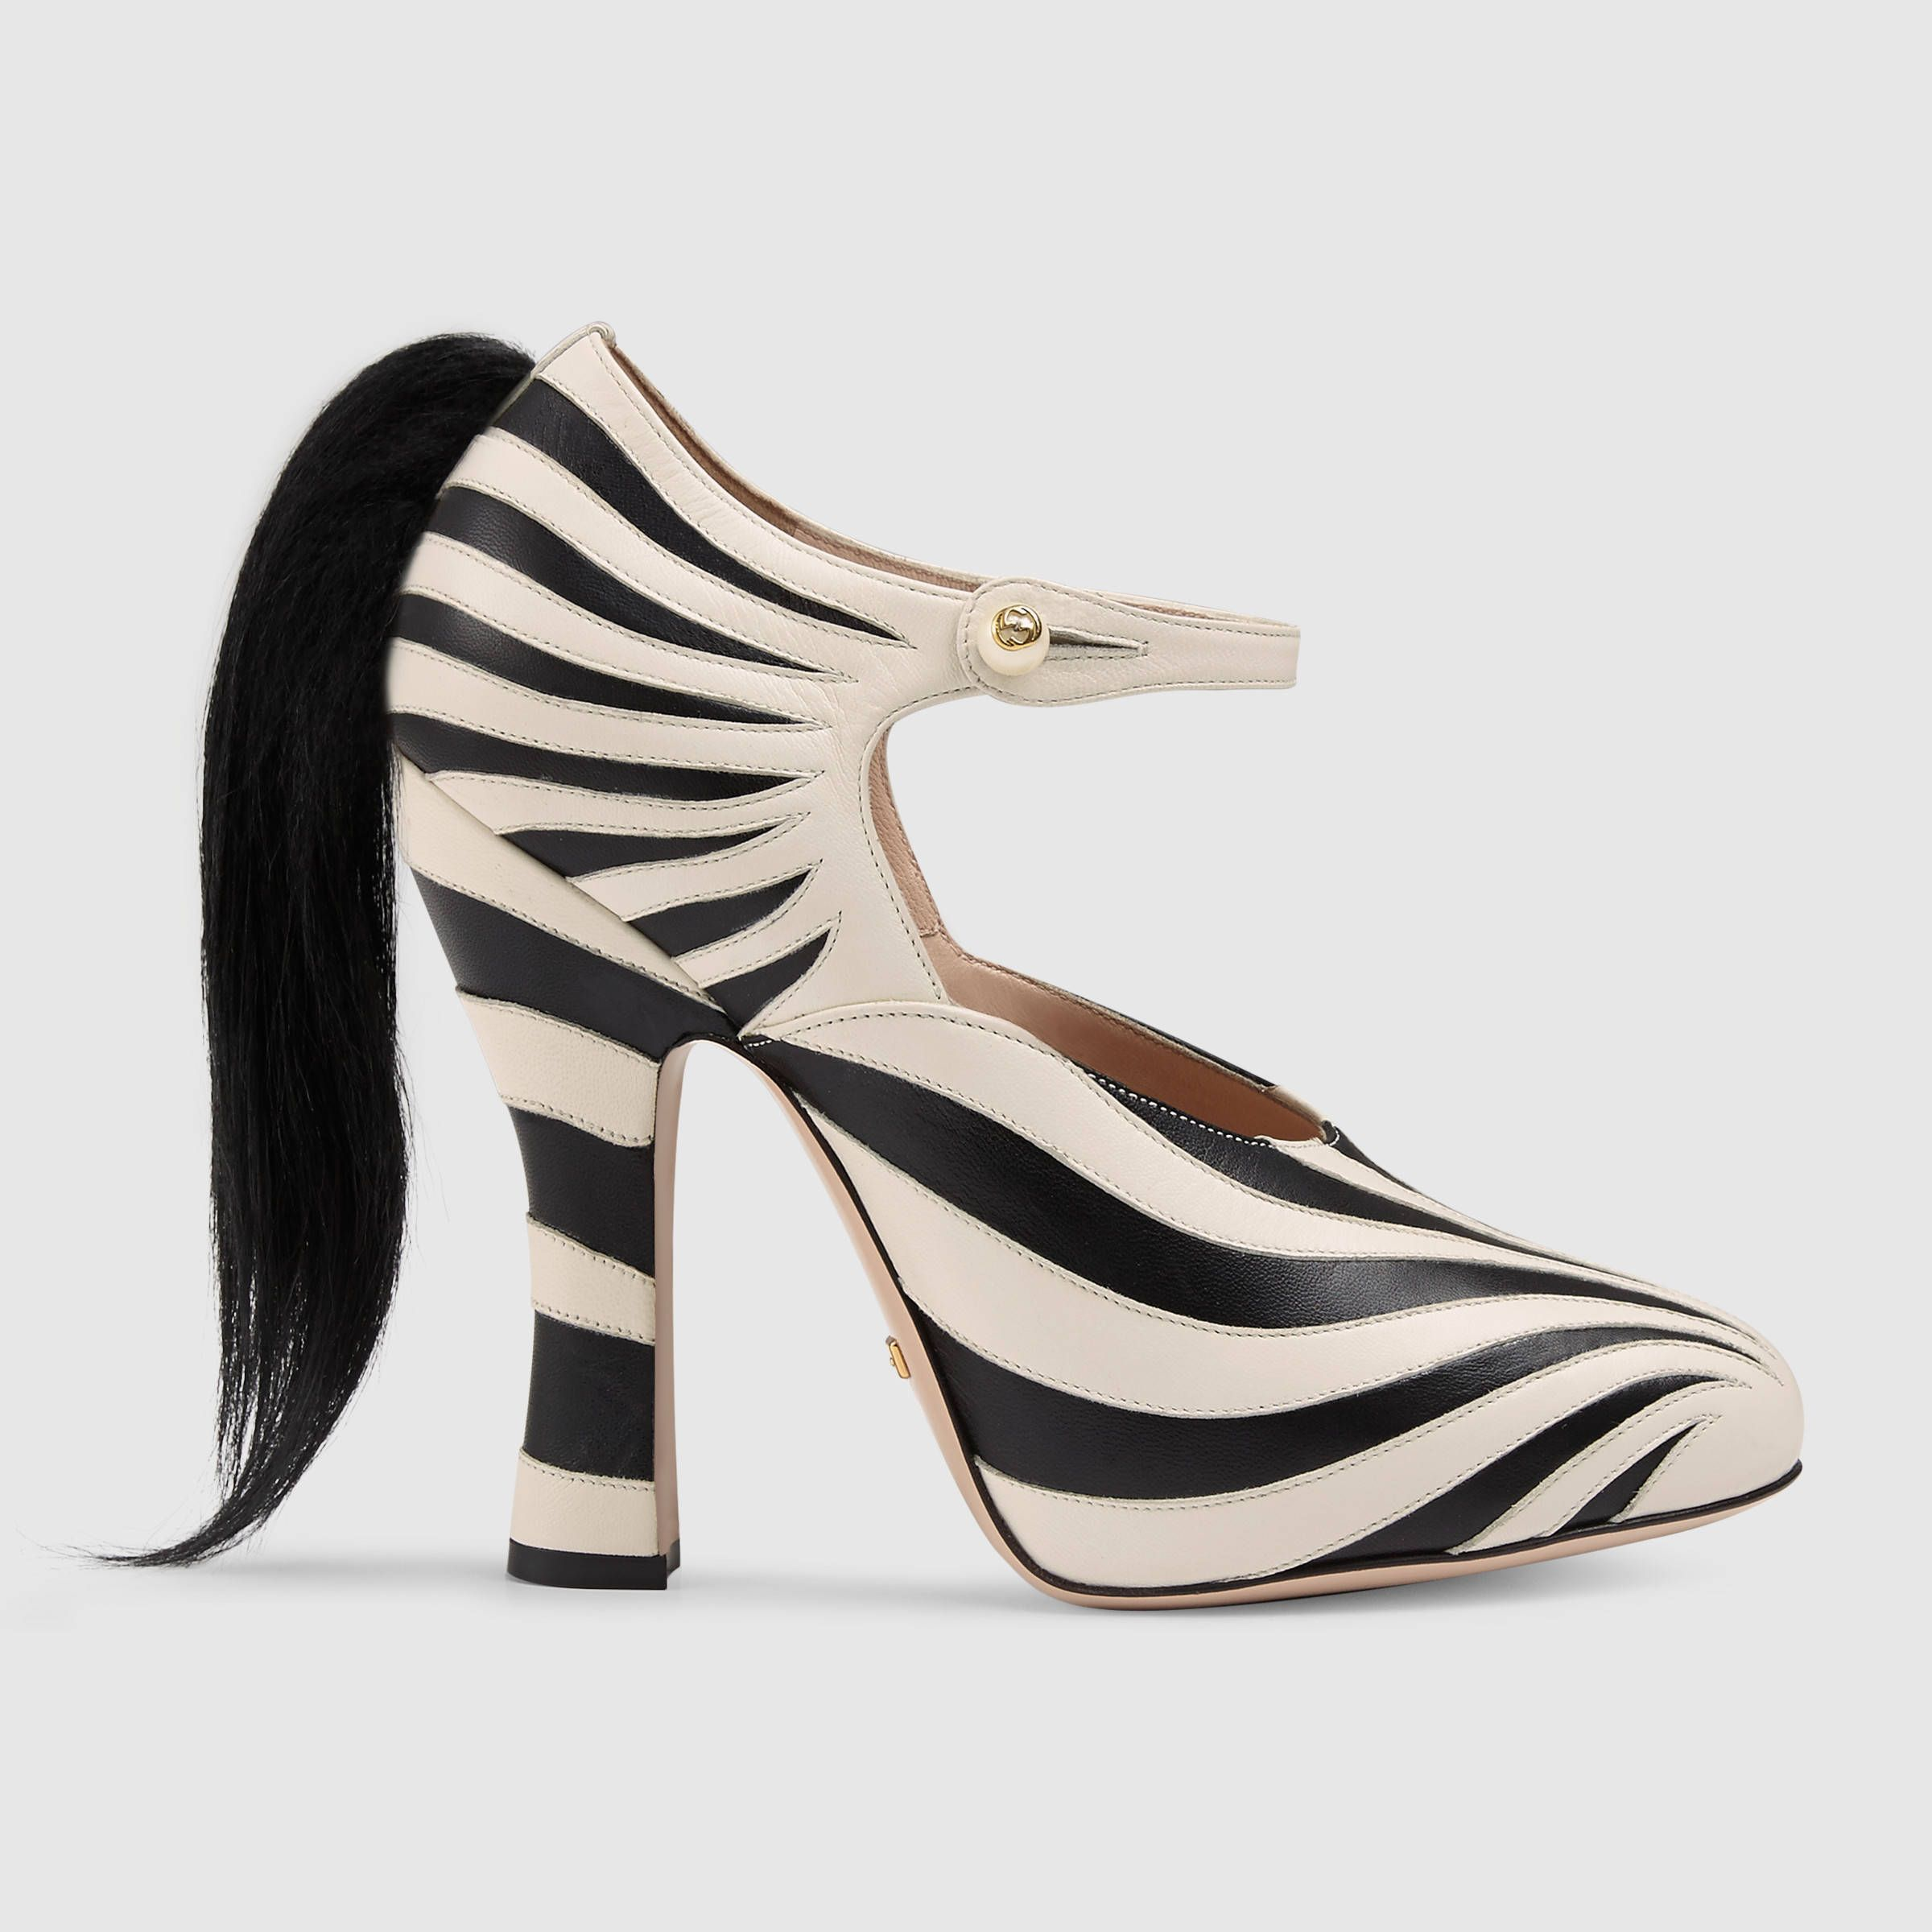 ea9b7e978889 These shoes by Gucci are $1,290.00 !!!! I think designers just make the  most outlandish ugly things to see how gullible and stupid the consumers  are!!!